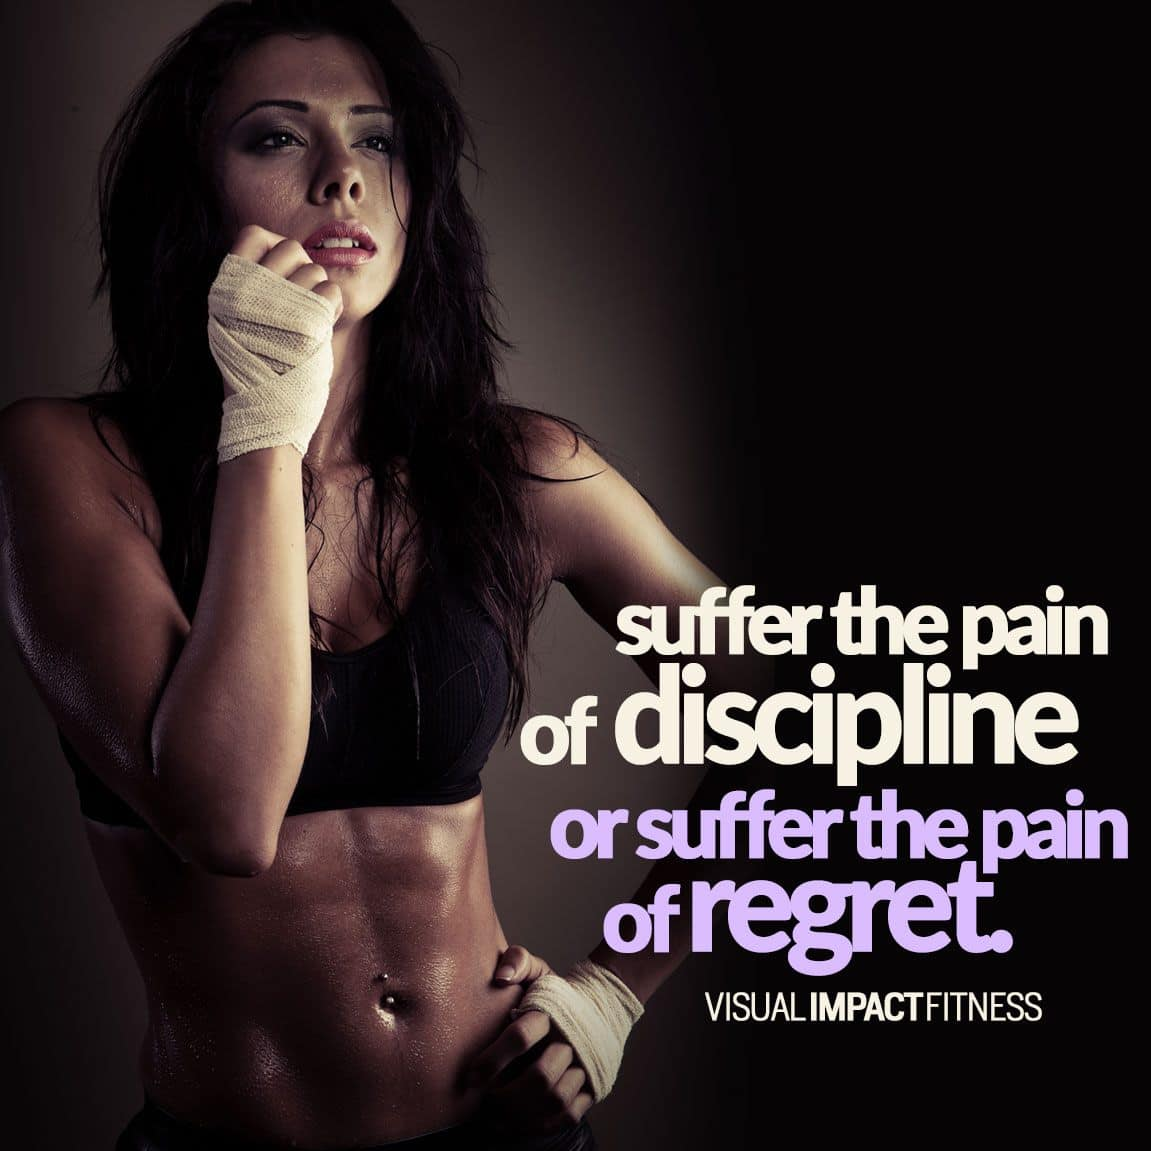 Suffer the pain of discipline, or suffer the pain of regret.